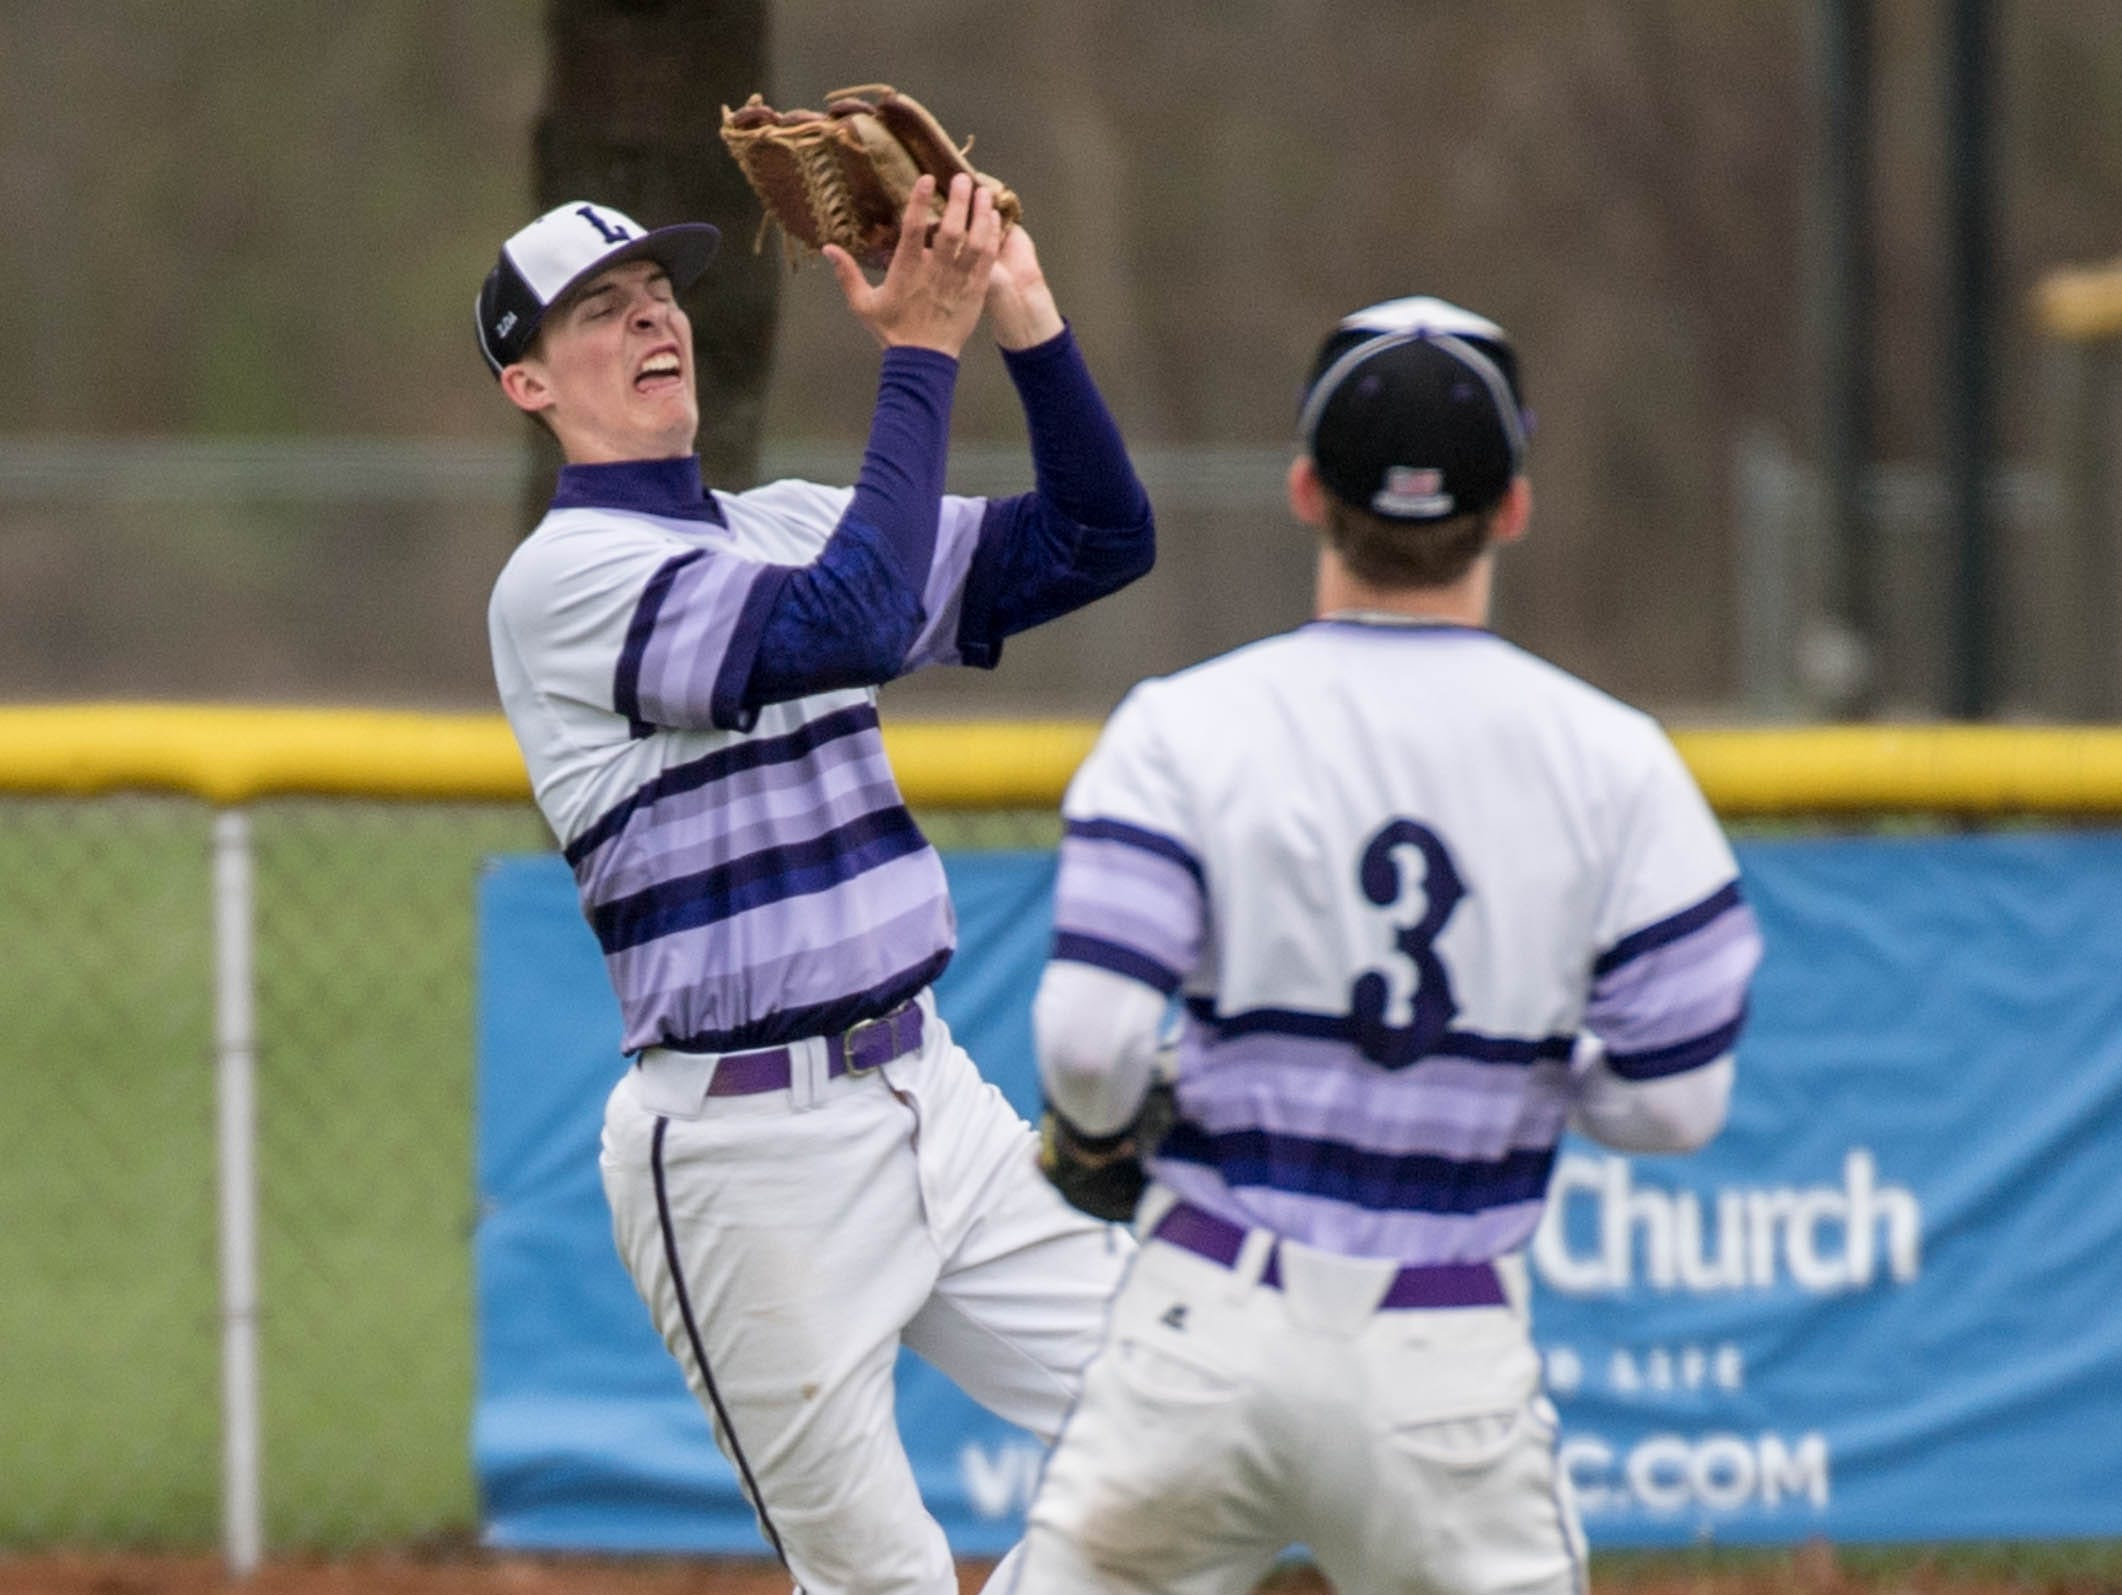 Lakeview junior Nate Jones grabs a fly ball for an out during a recent game.